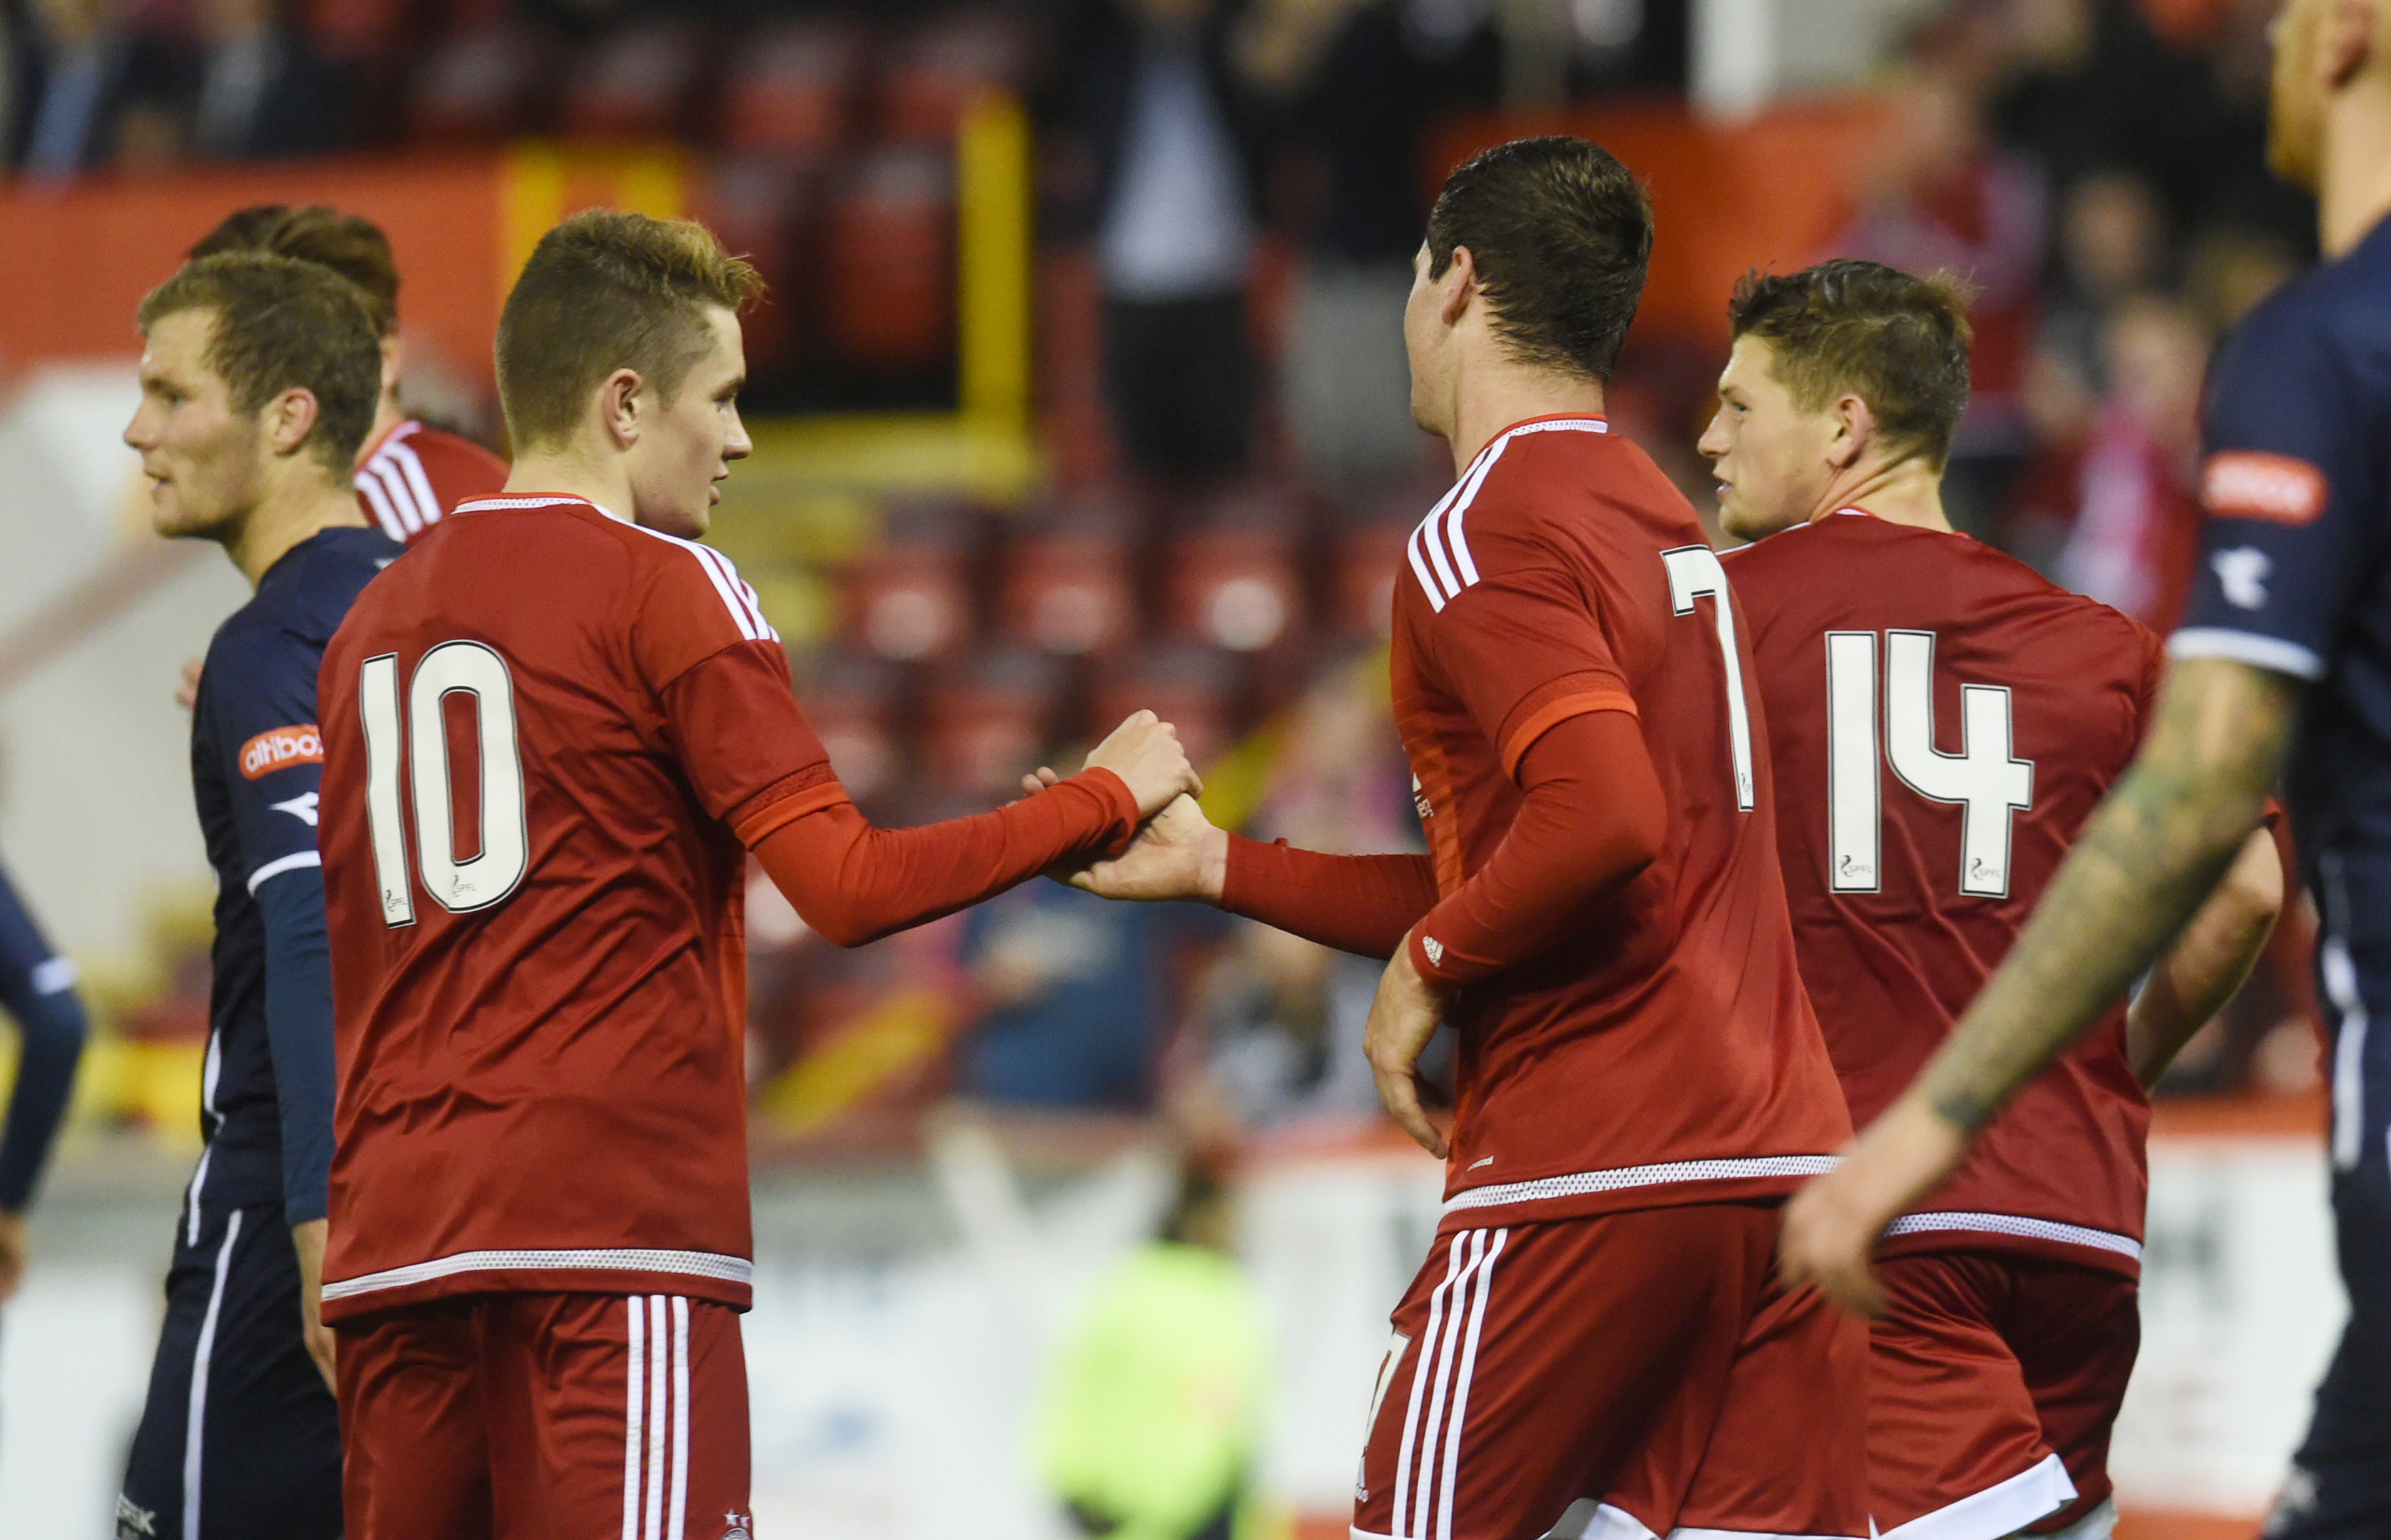 Aberdeen's Kenny McLean  celebrates after putting his side 2-1 up.